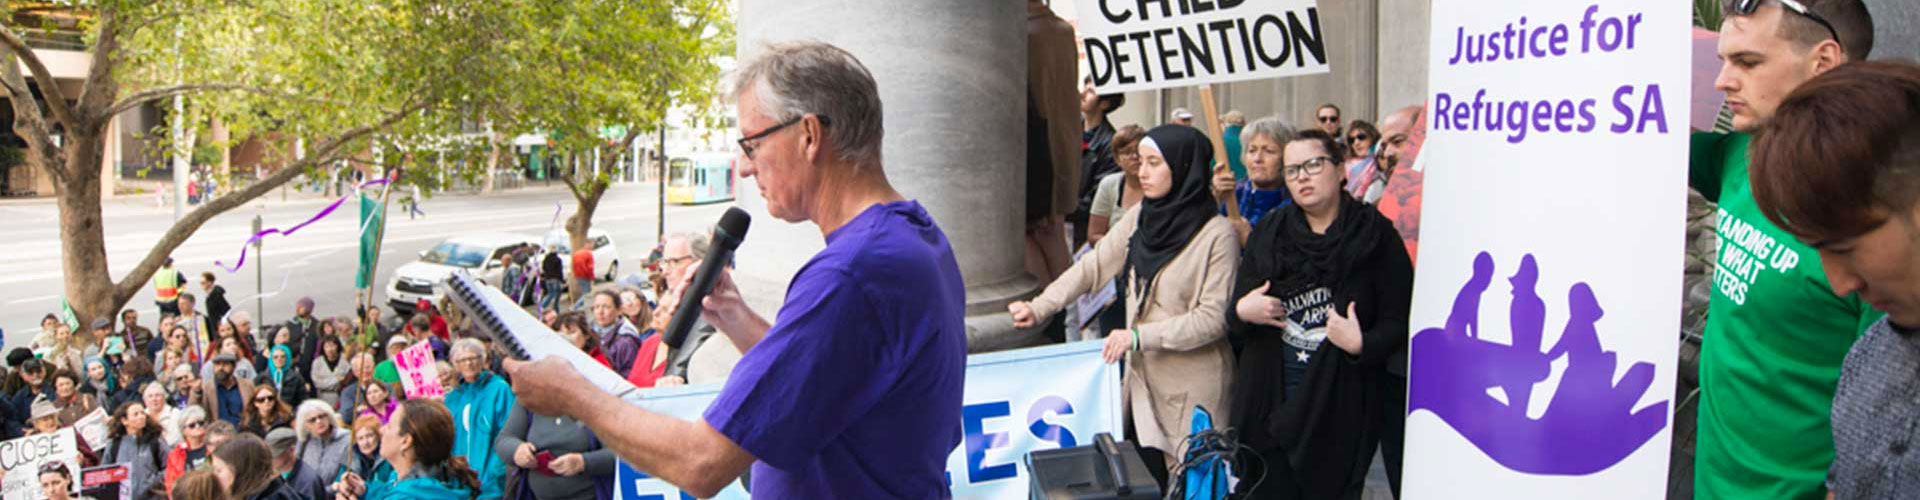 speech justice for refugees SA